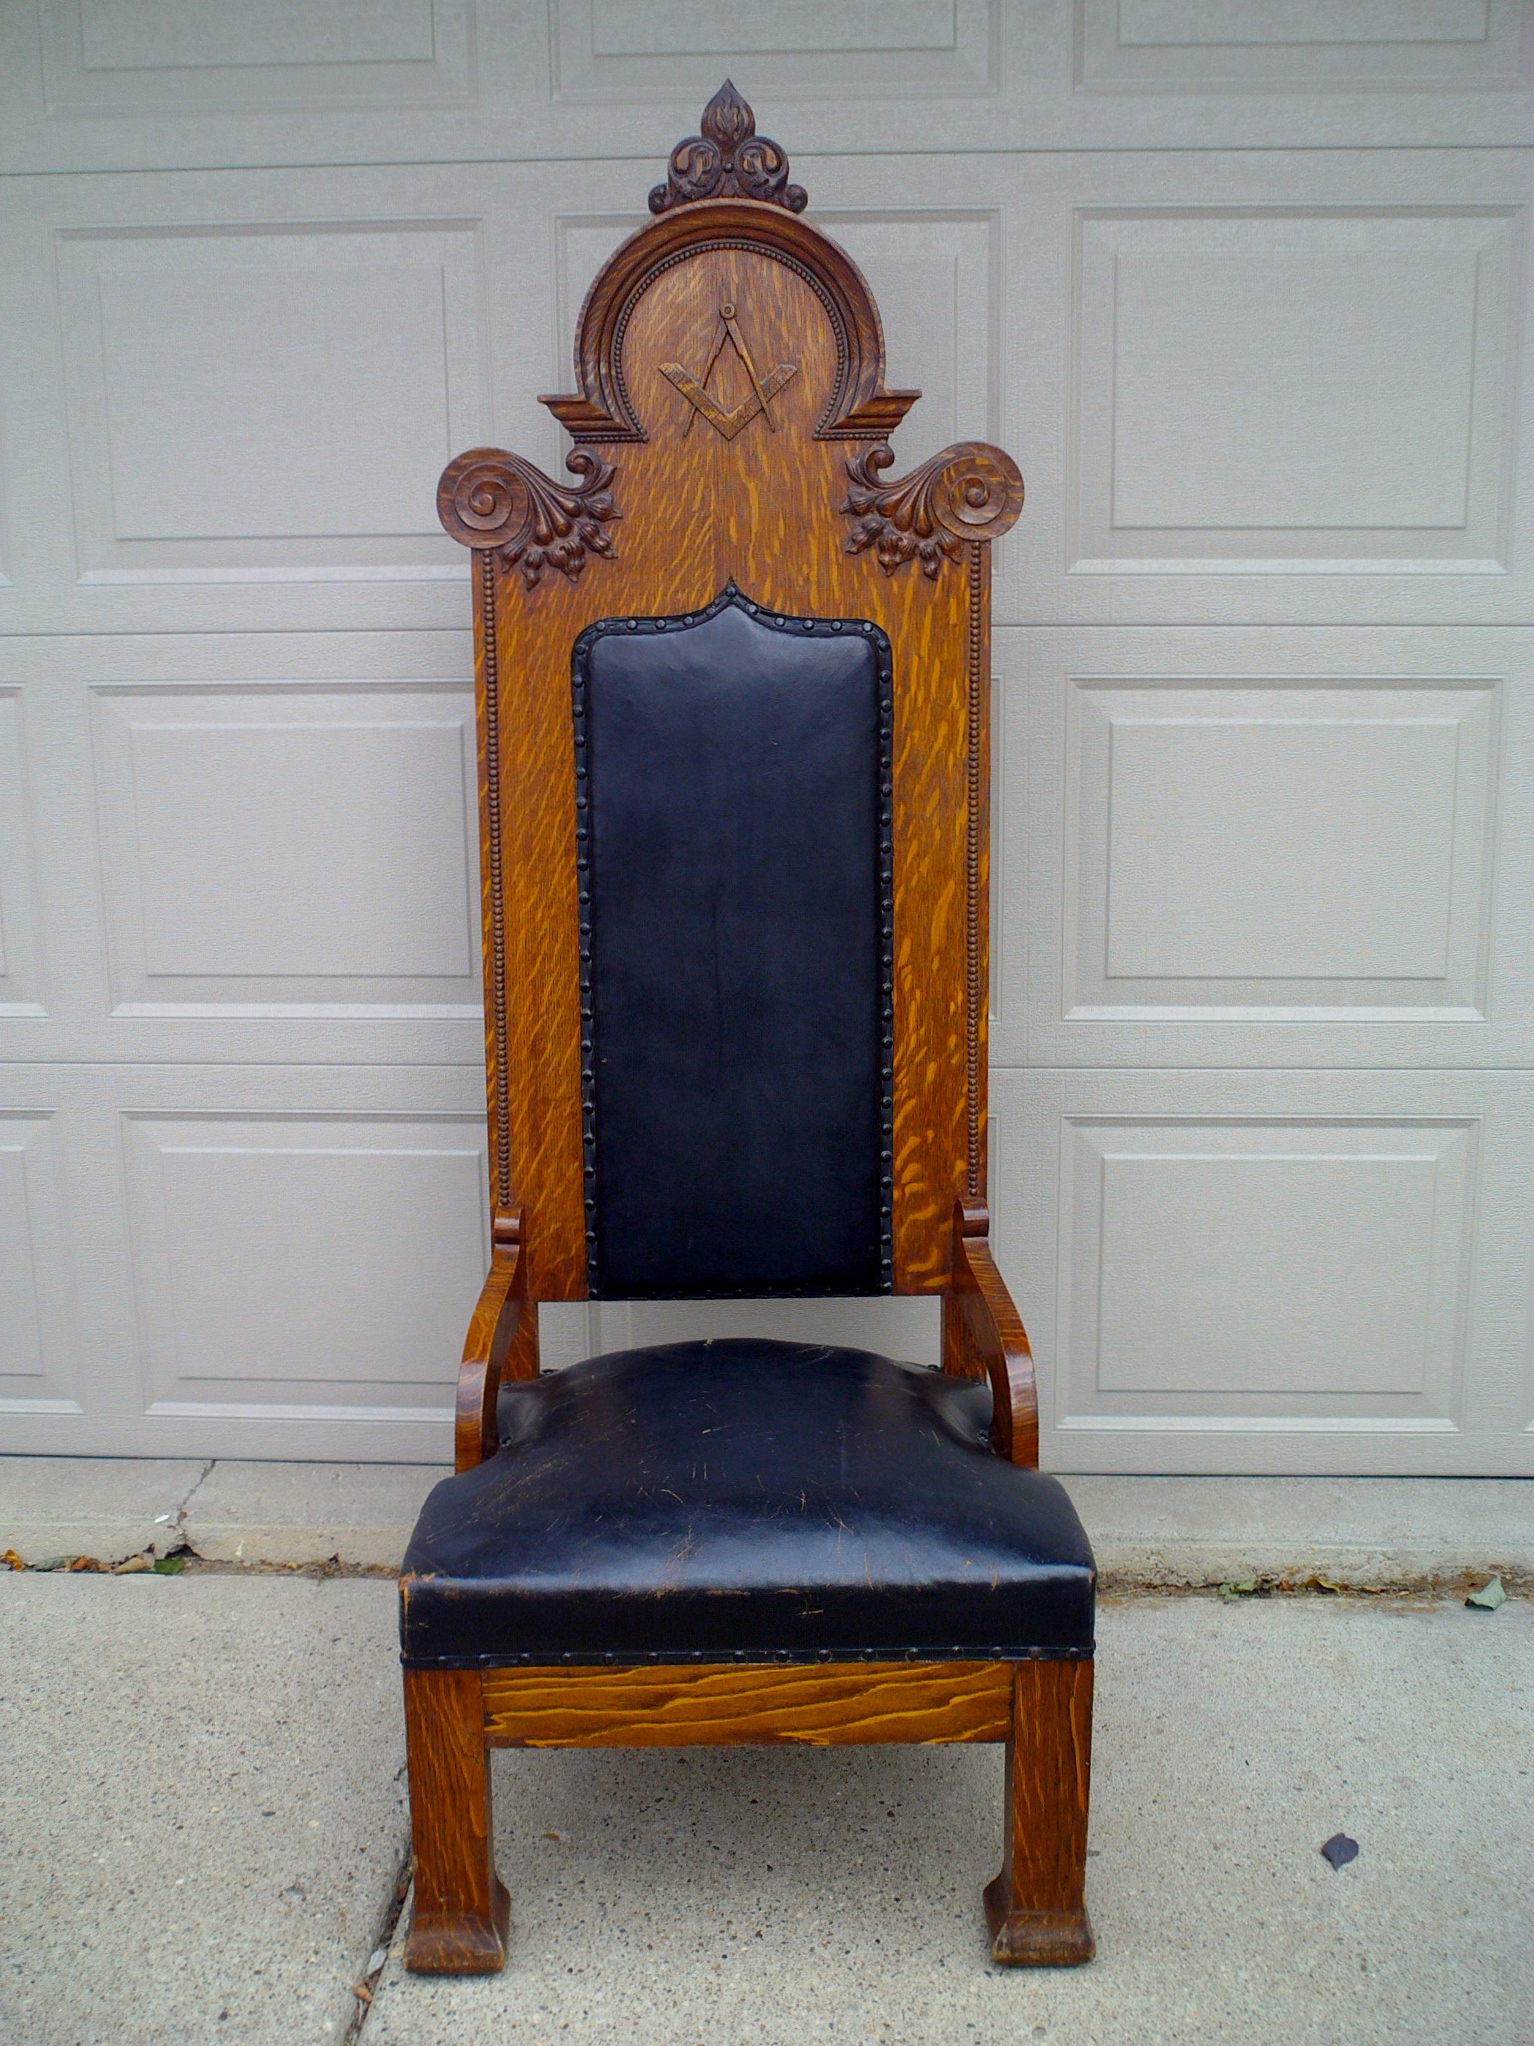 Antique Gothic Ornate Carved Oak Masonic Chair For Sale | Antiques.com |  Classifieds - Antique Gothic Ornate Carved Oak Masonic Chair For Sale Antiques